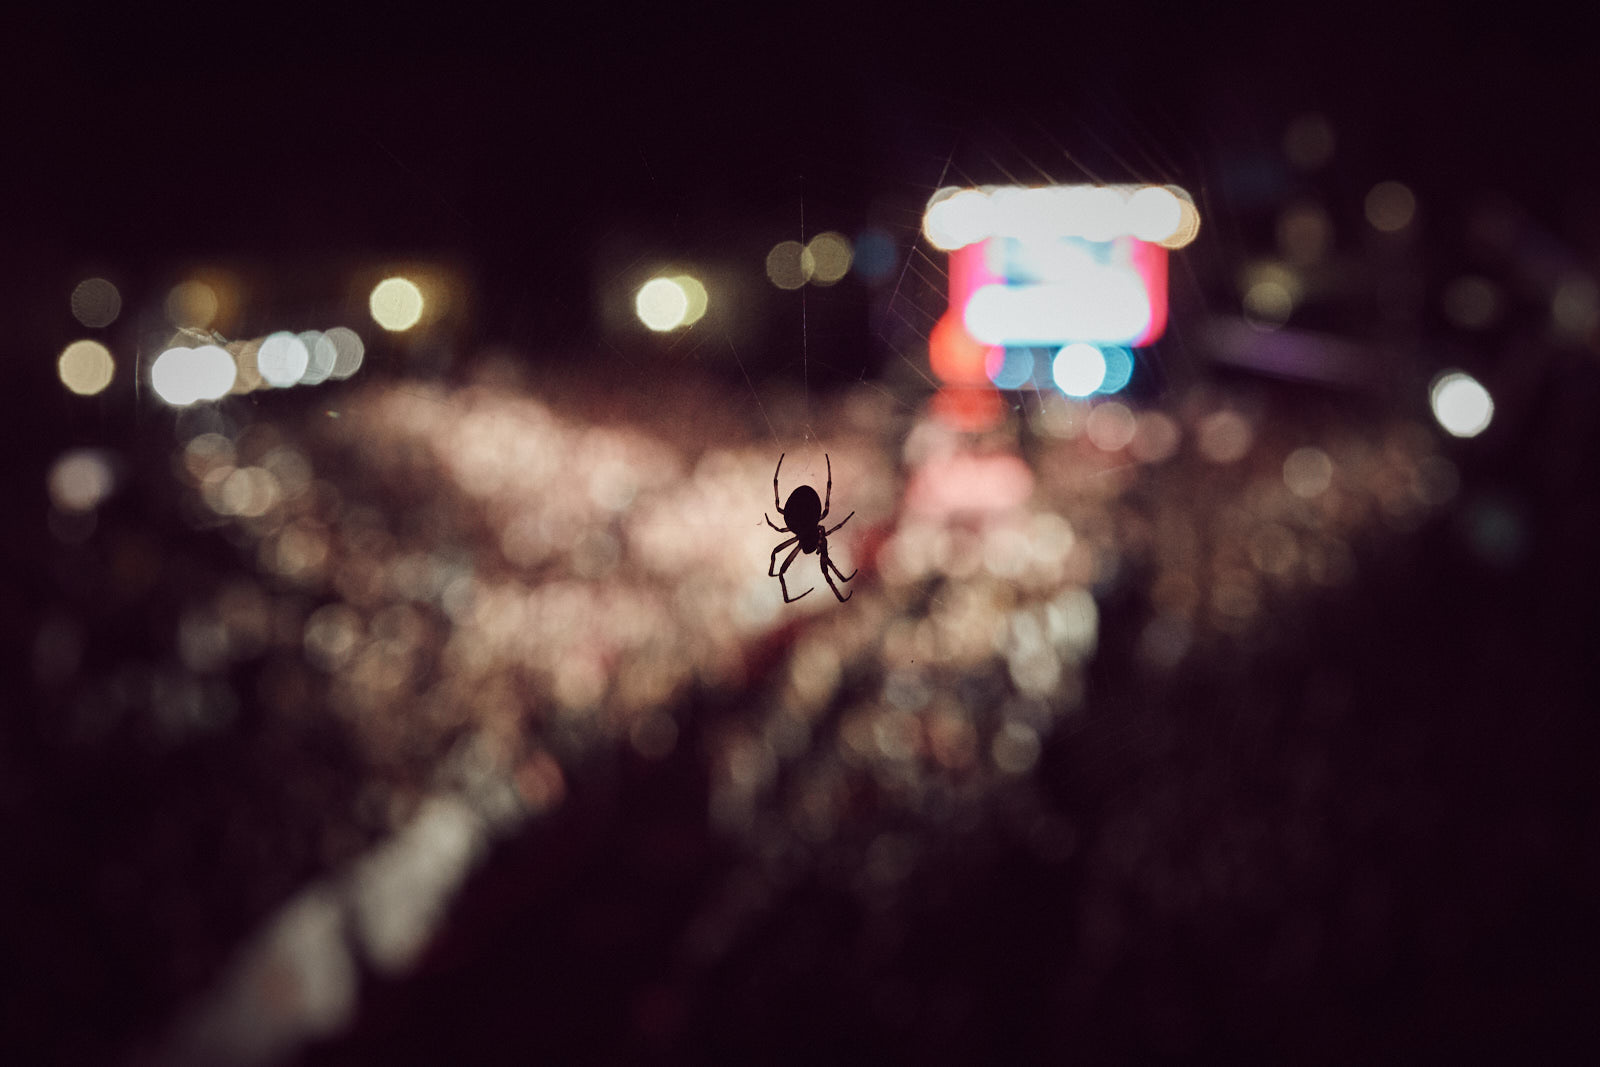 A spider rests on its net as the last athletes arrive to the finish line of the Ironman Kalmar on August 18, 2018 in Kalmar, Sweden.